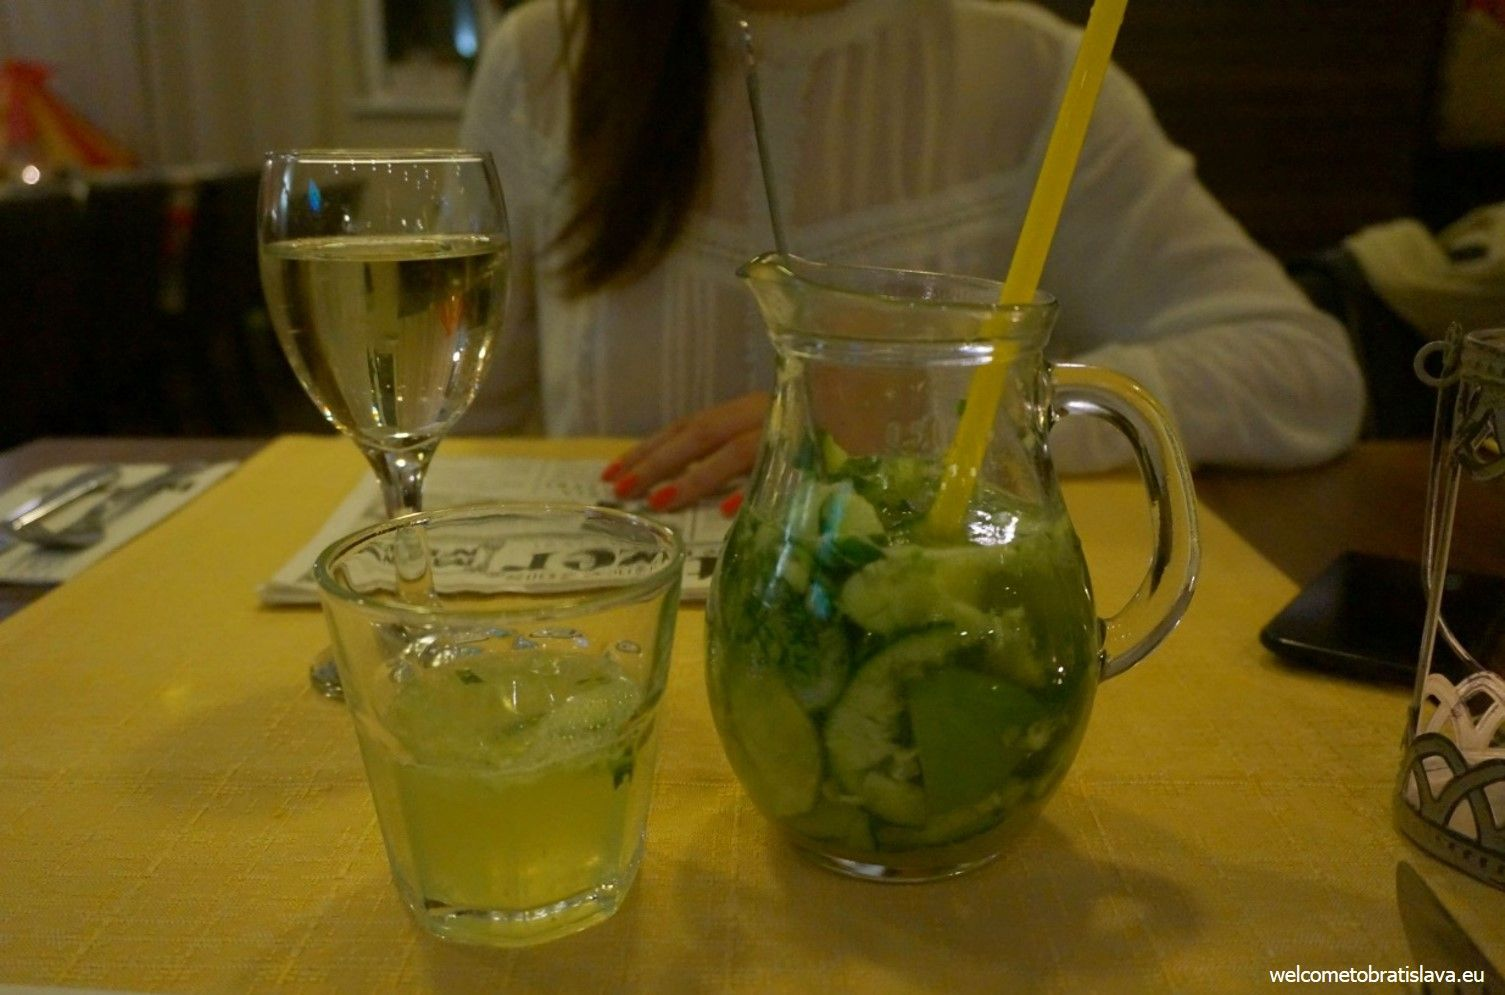 My recommendation: the cucumber lemonade